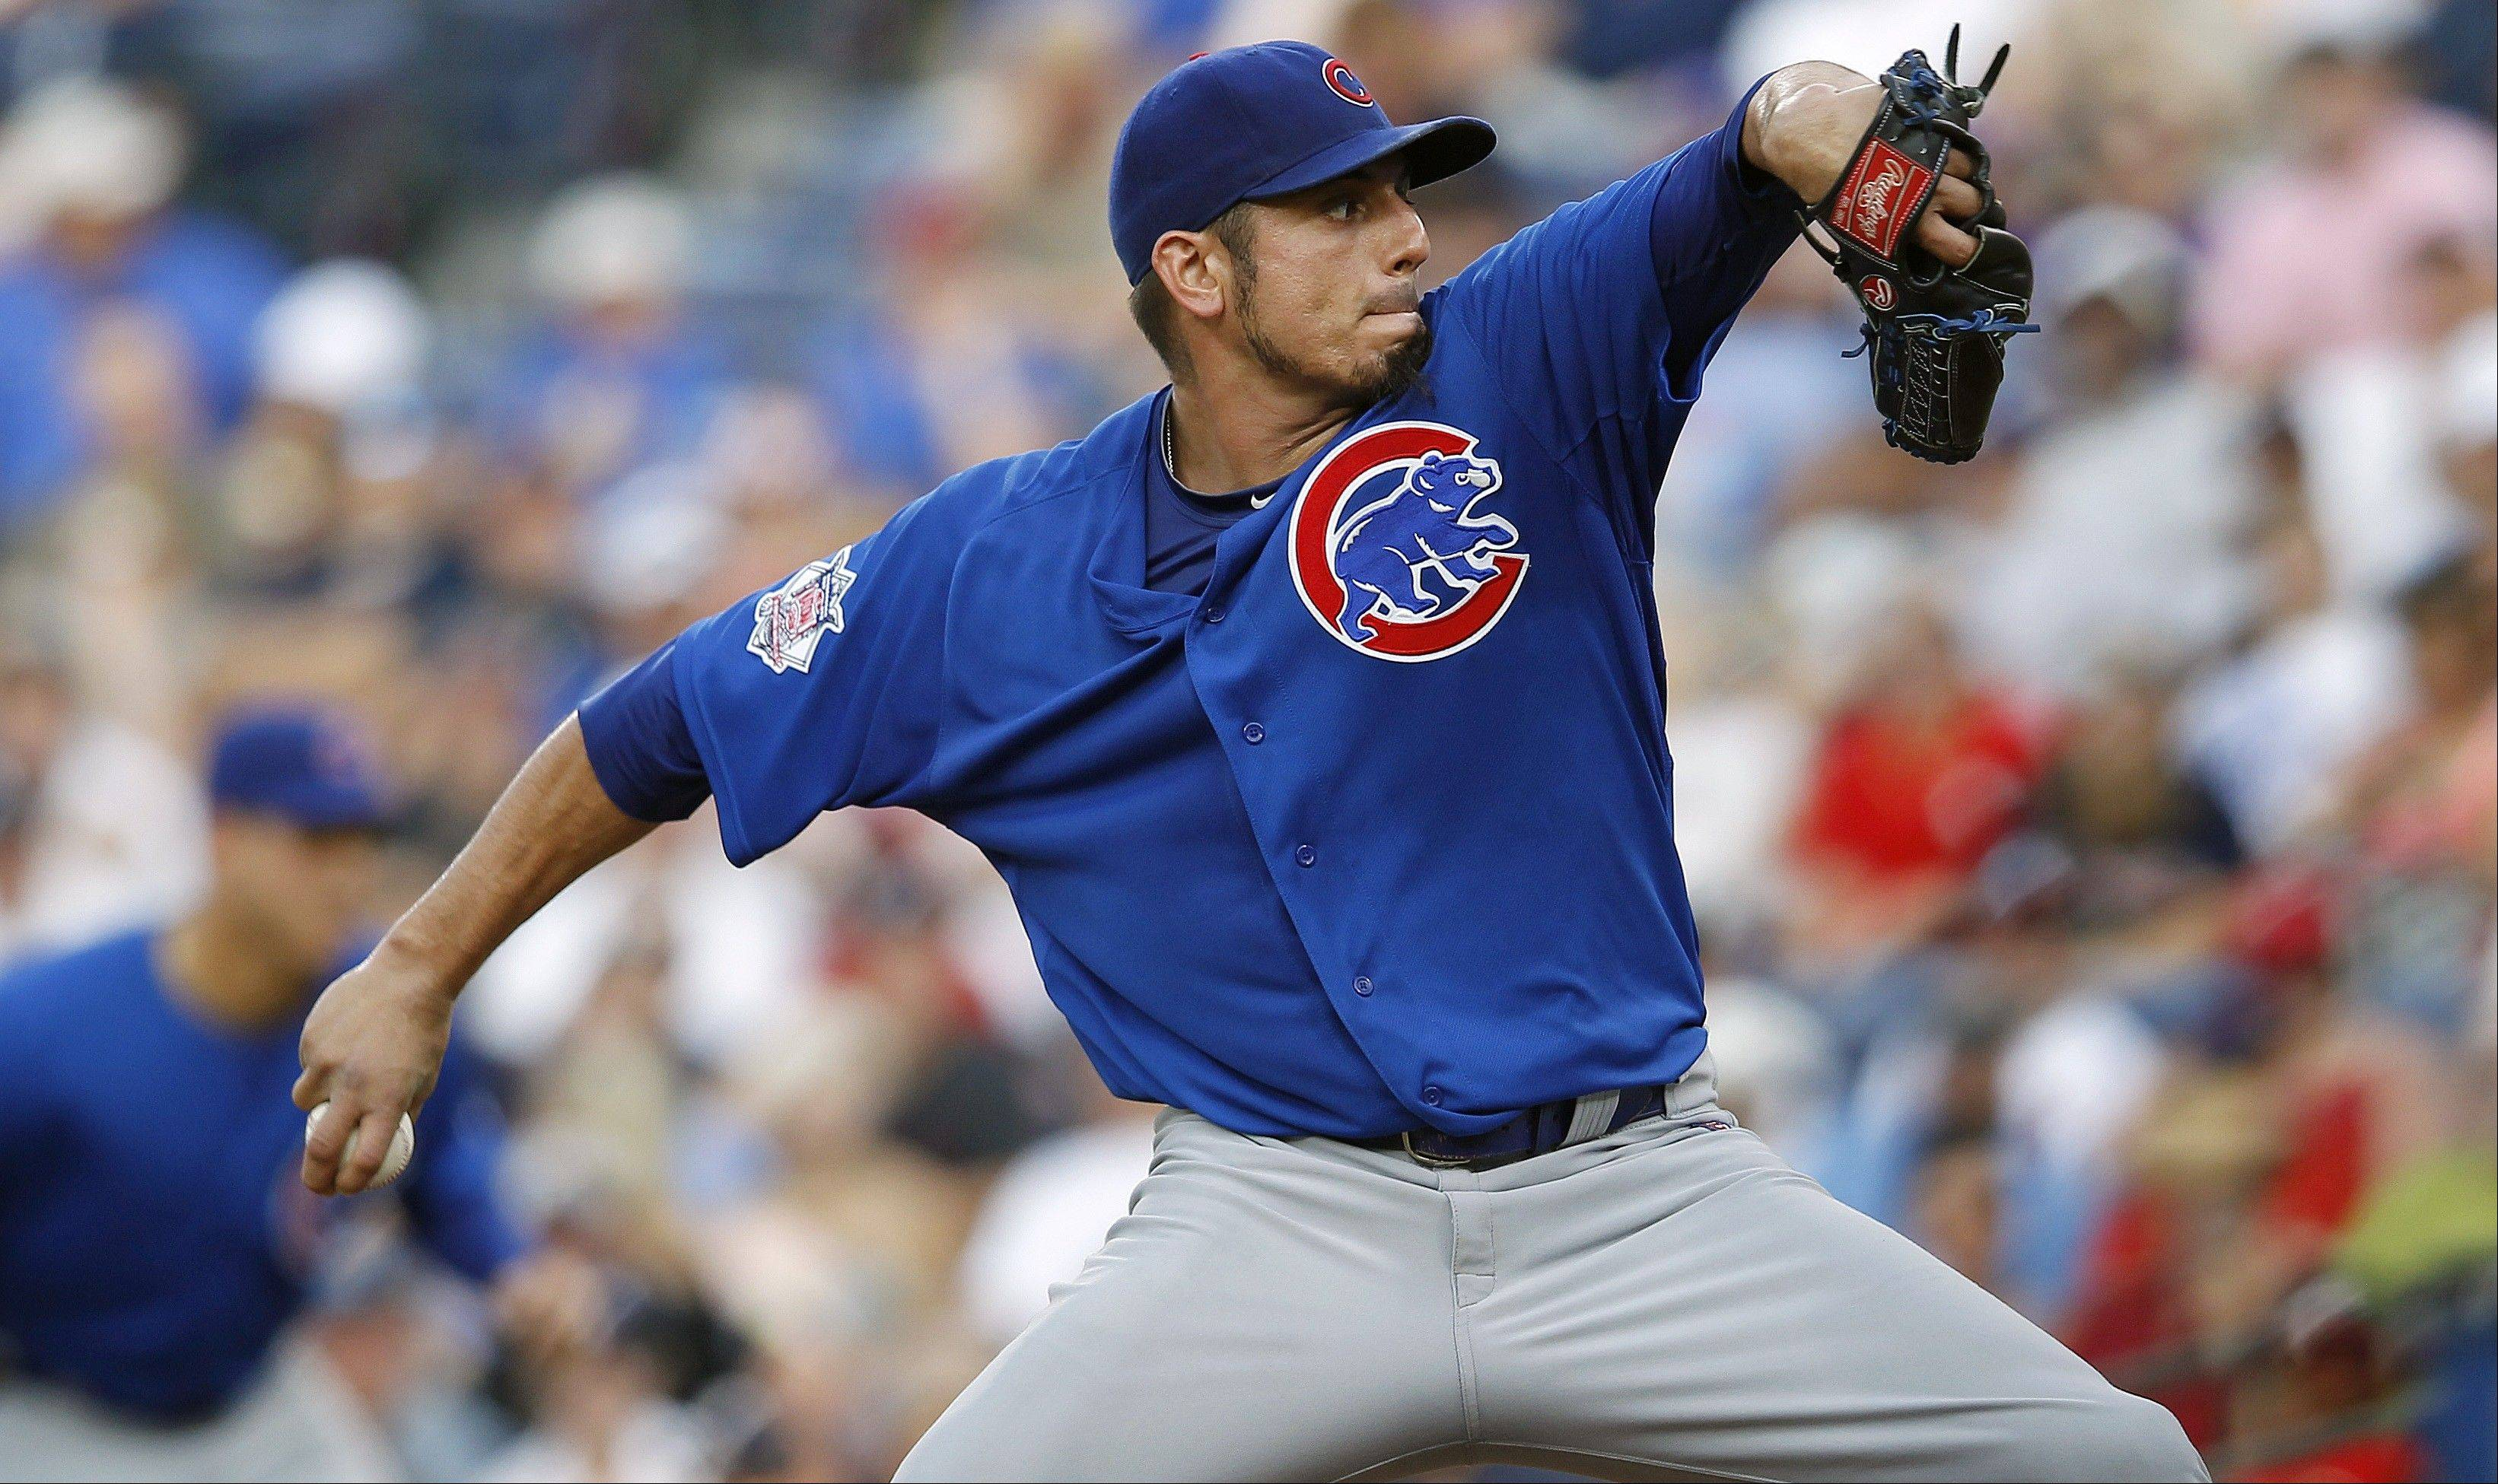 'Garza trade' has frustrated Cubs, Rays